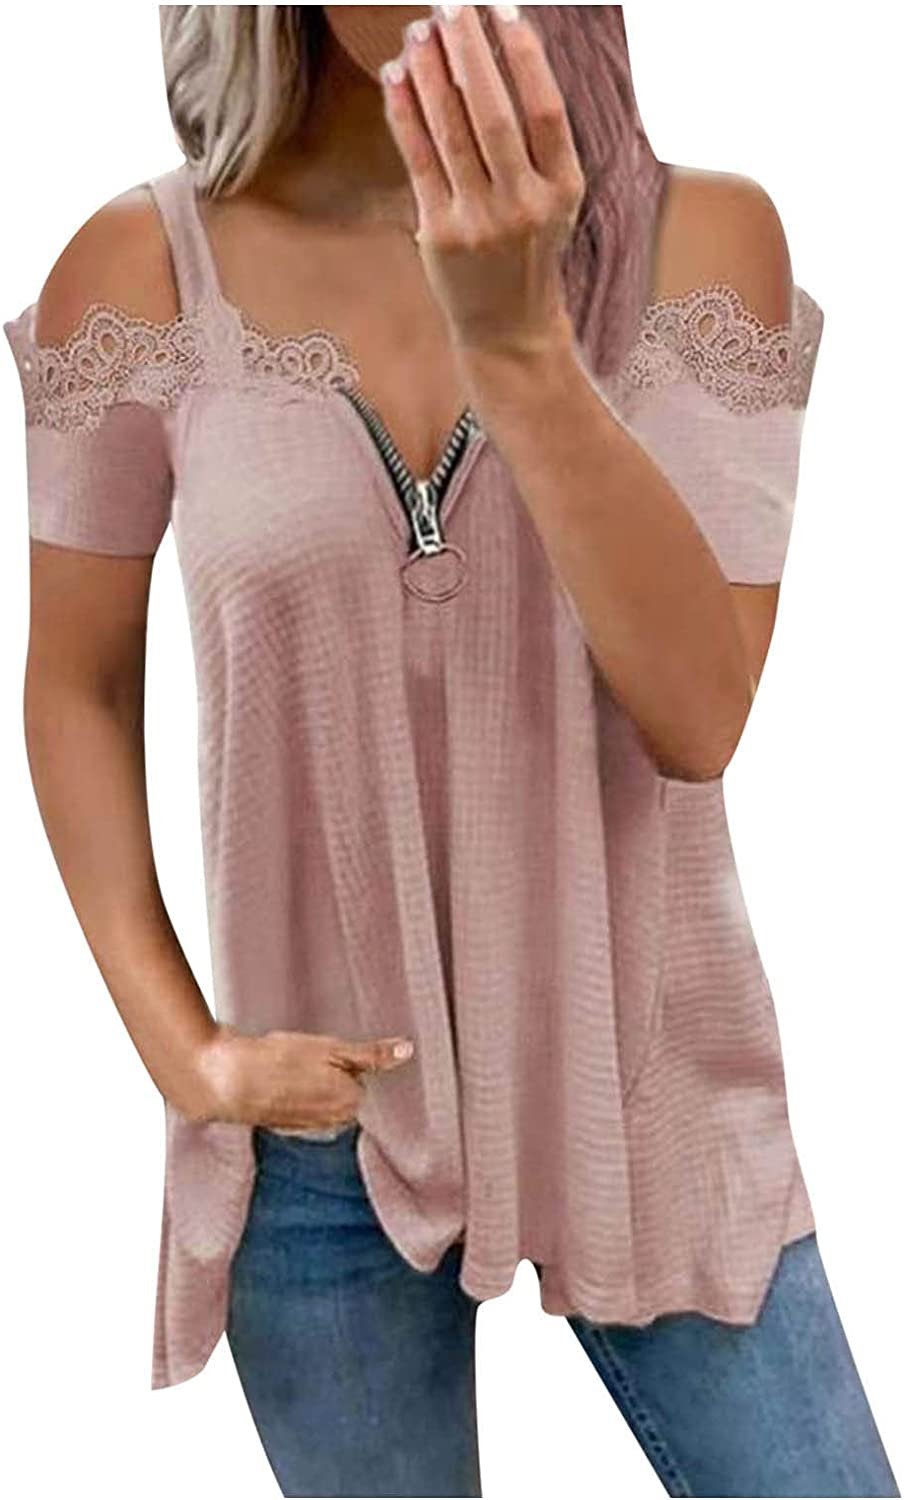 Womens Summer Tops, Women Summer Sexy Clod Shoulder T-Shirts Trendy Casual Loose Fit V-Neck Zipper Tunic Tees Blouses